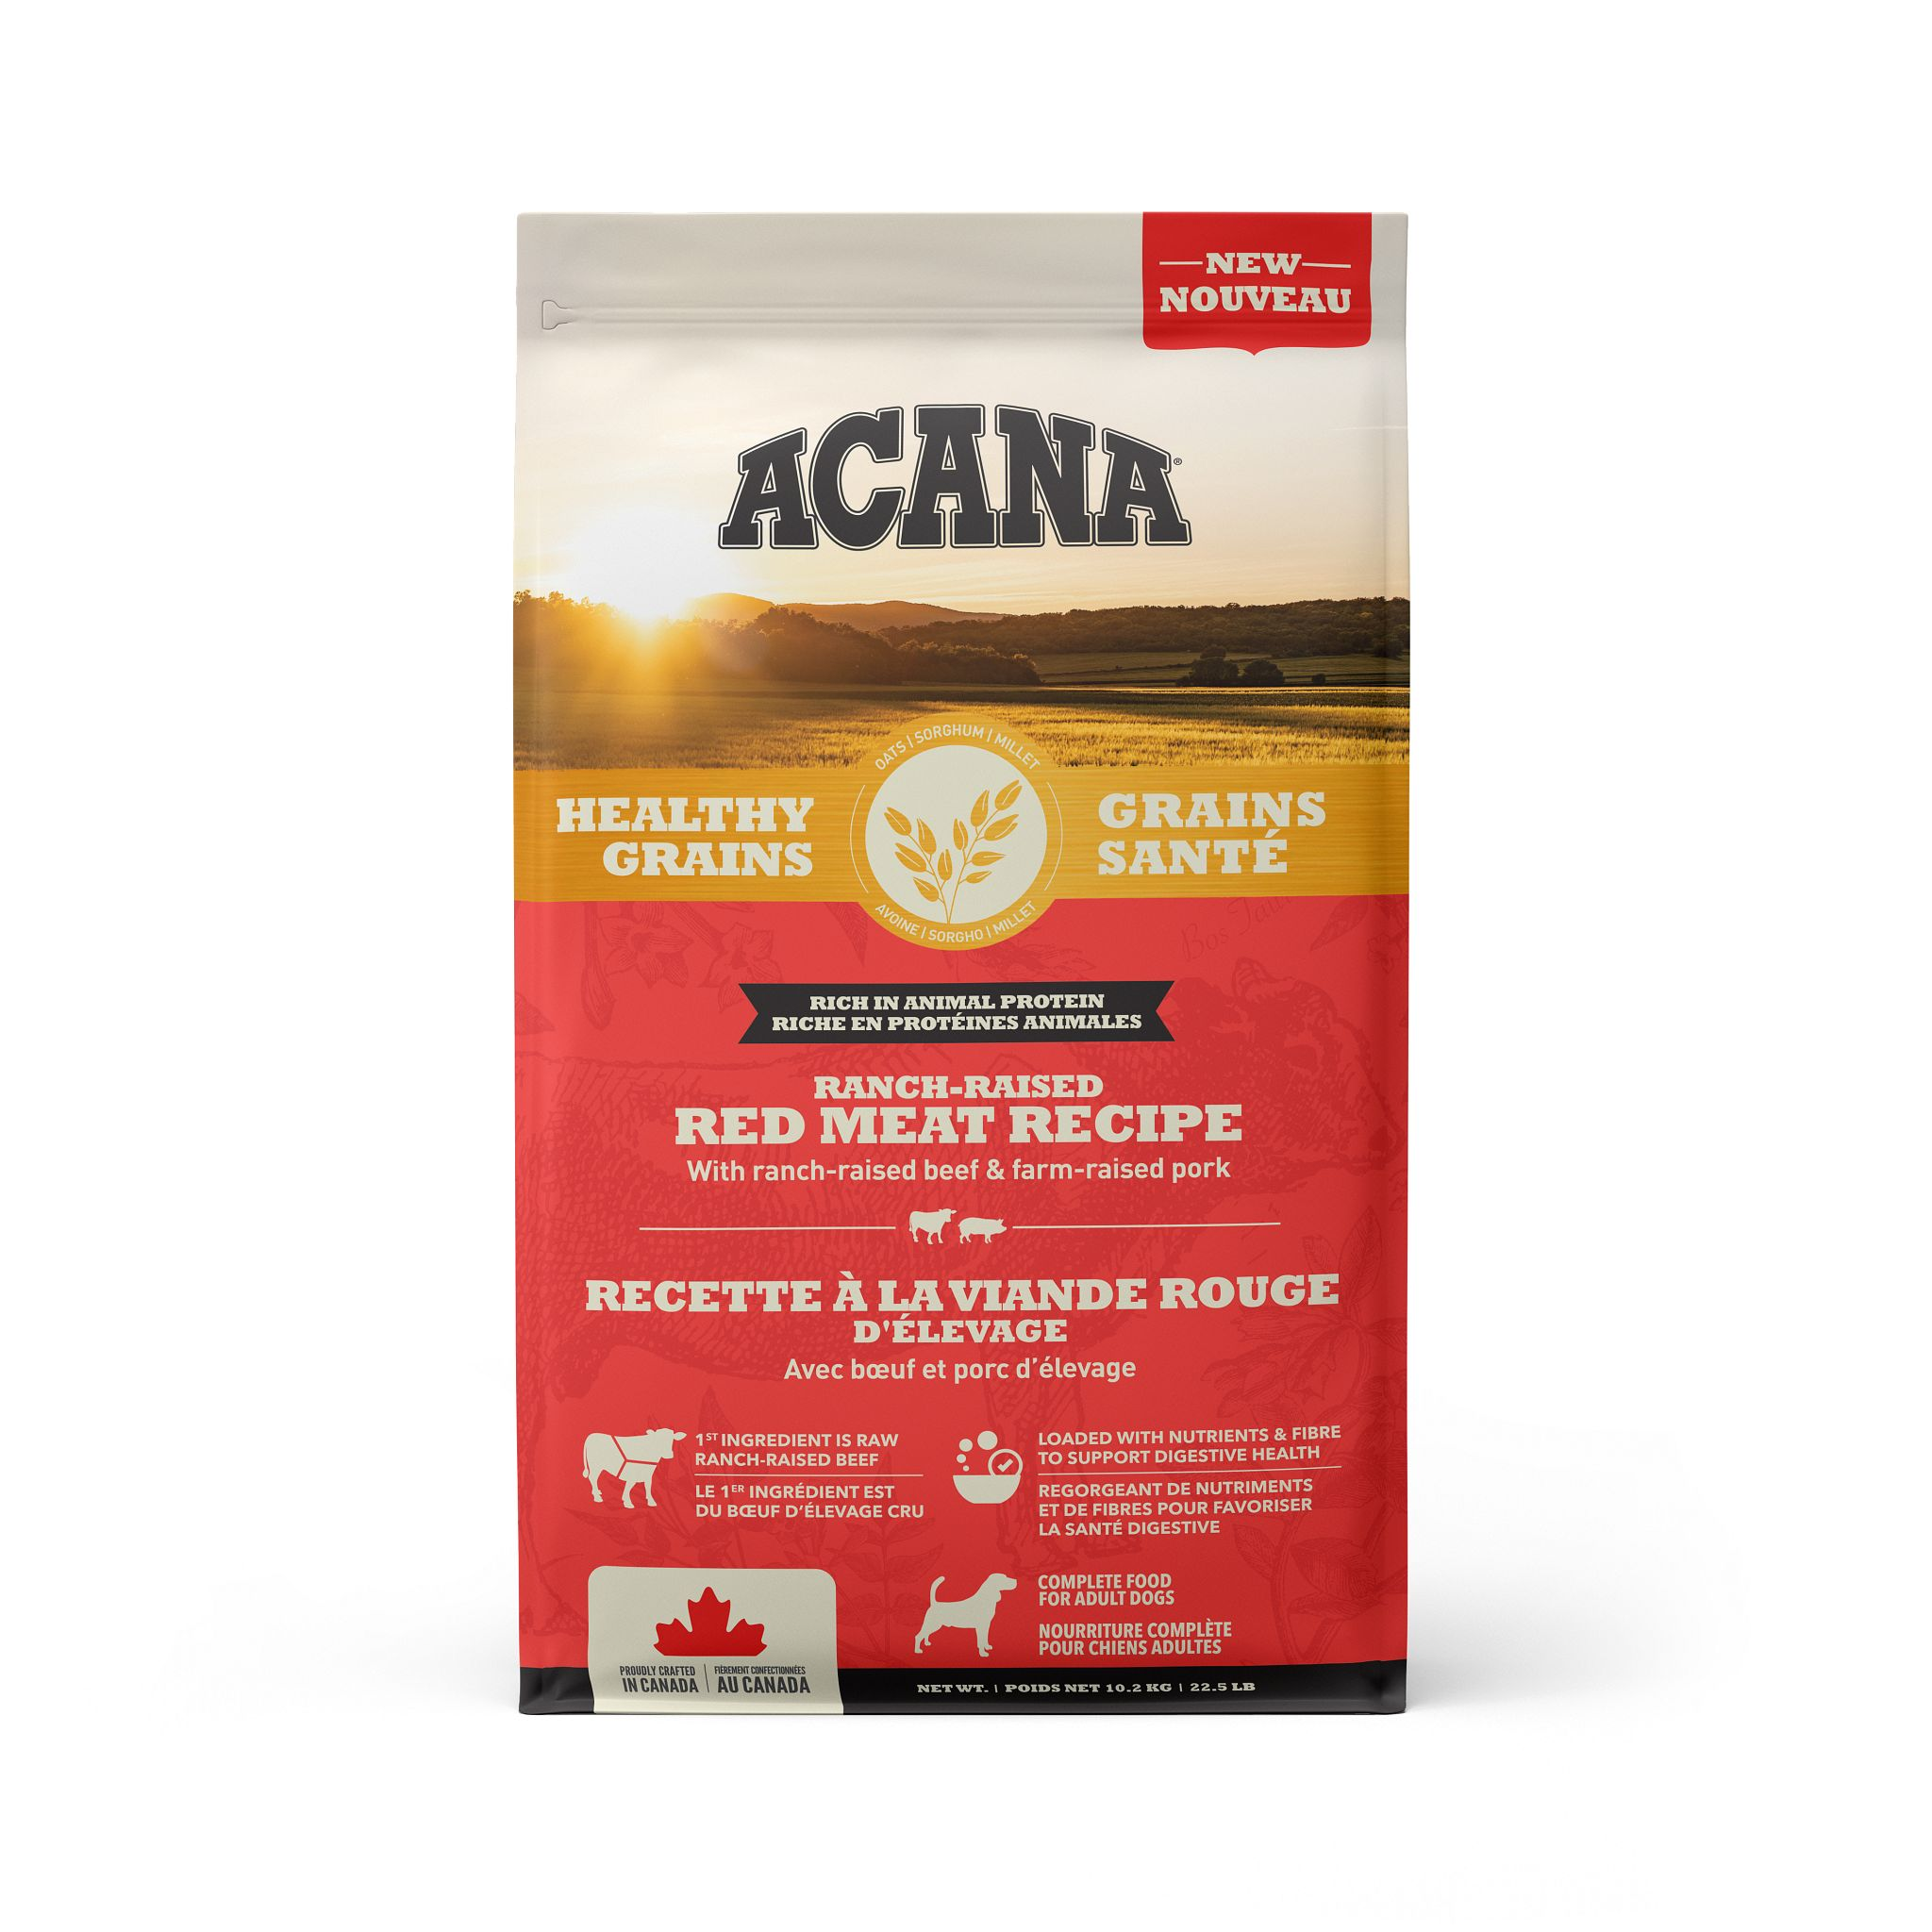 ACANA Healthy Grains Ranch-Raised Red Meat Recipe, 10.2-kg